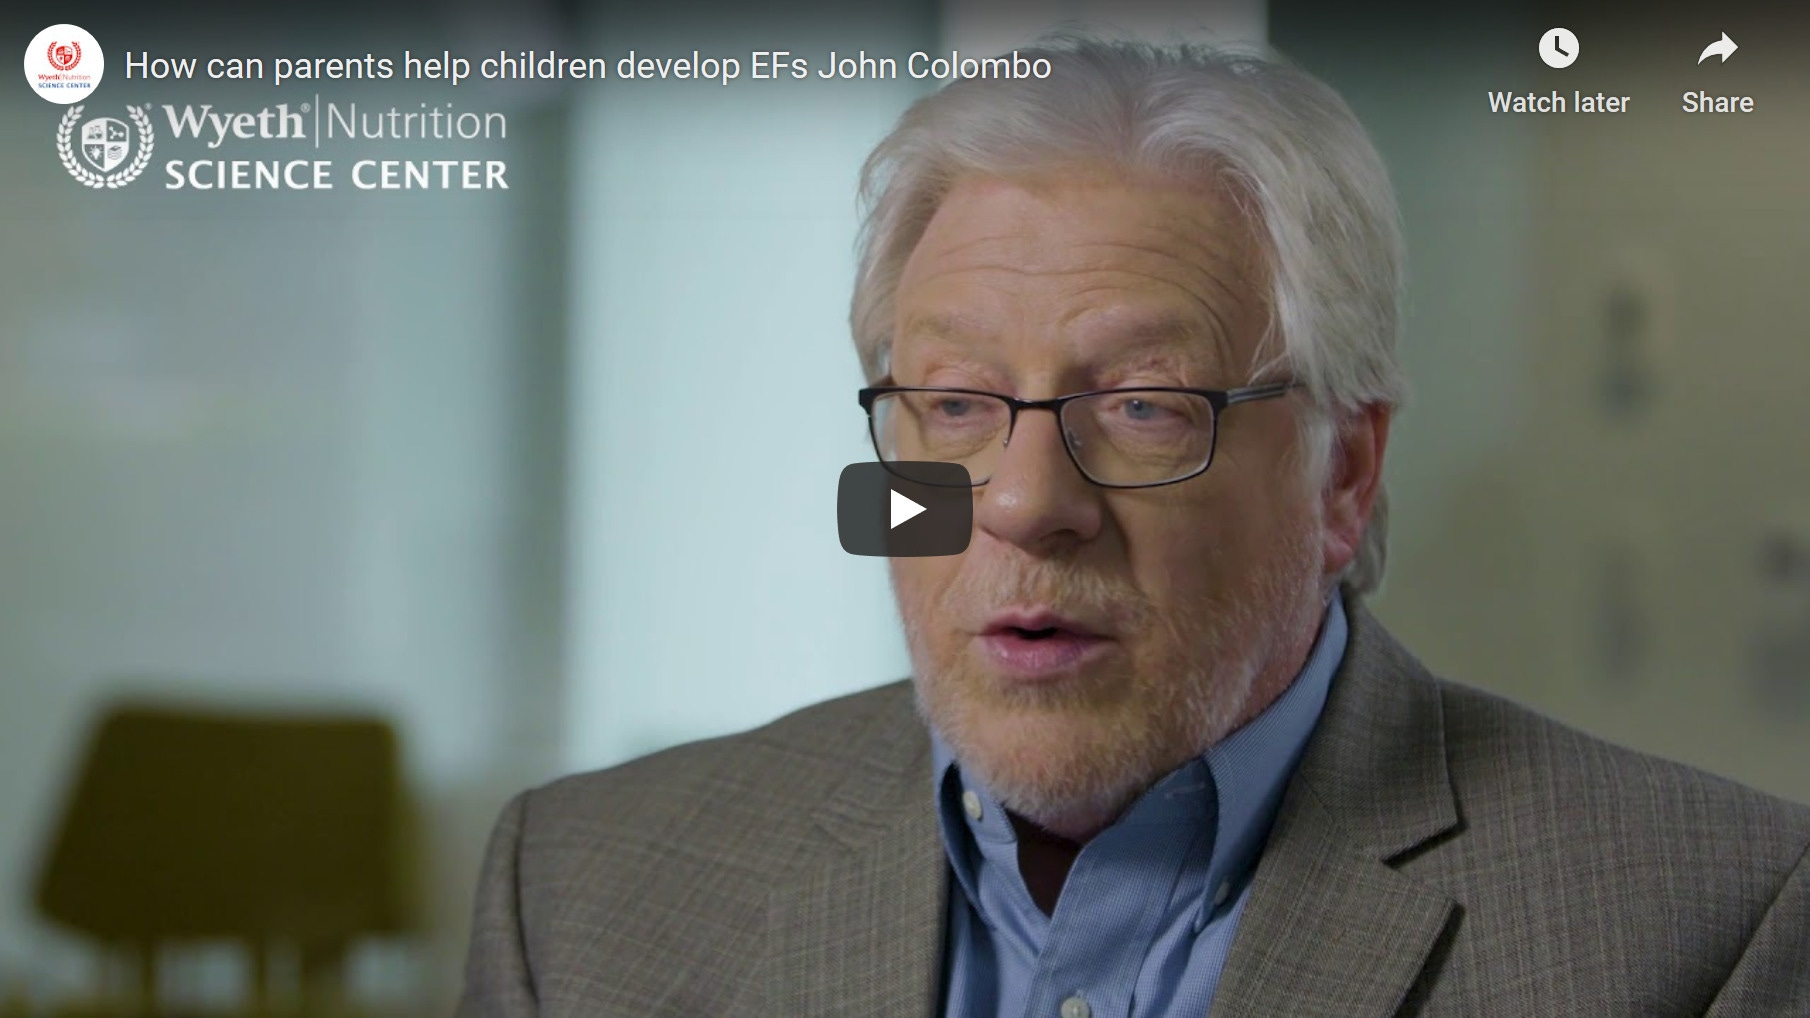 What is normal executive function development - Prof. John Colombo